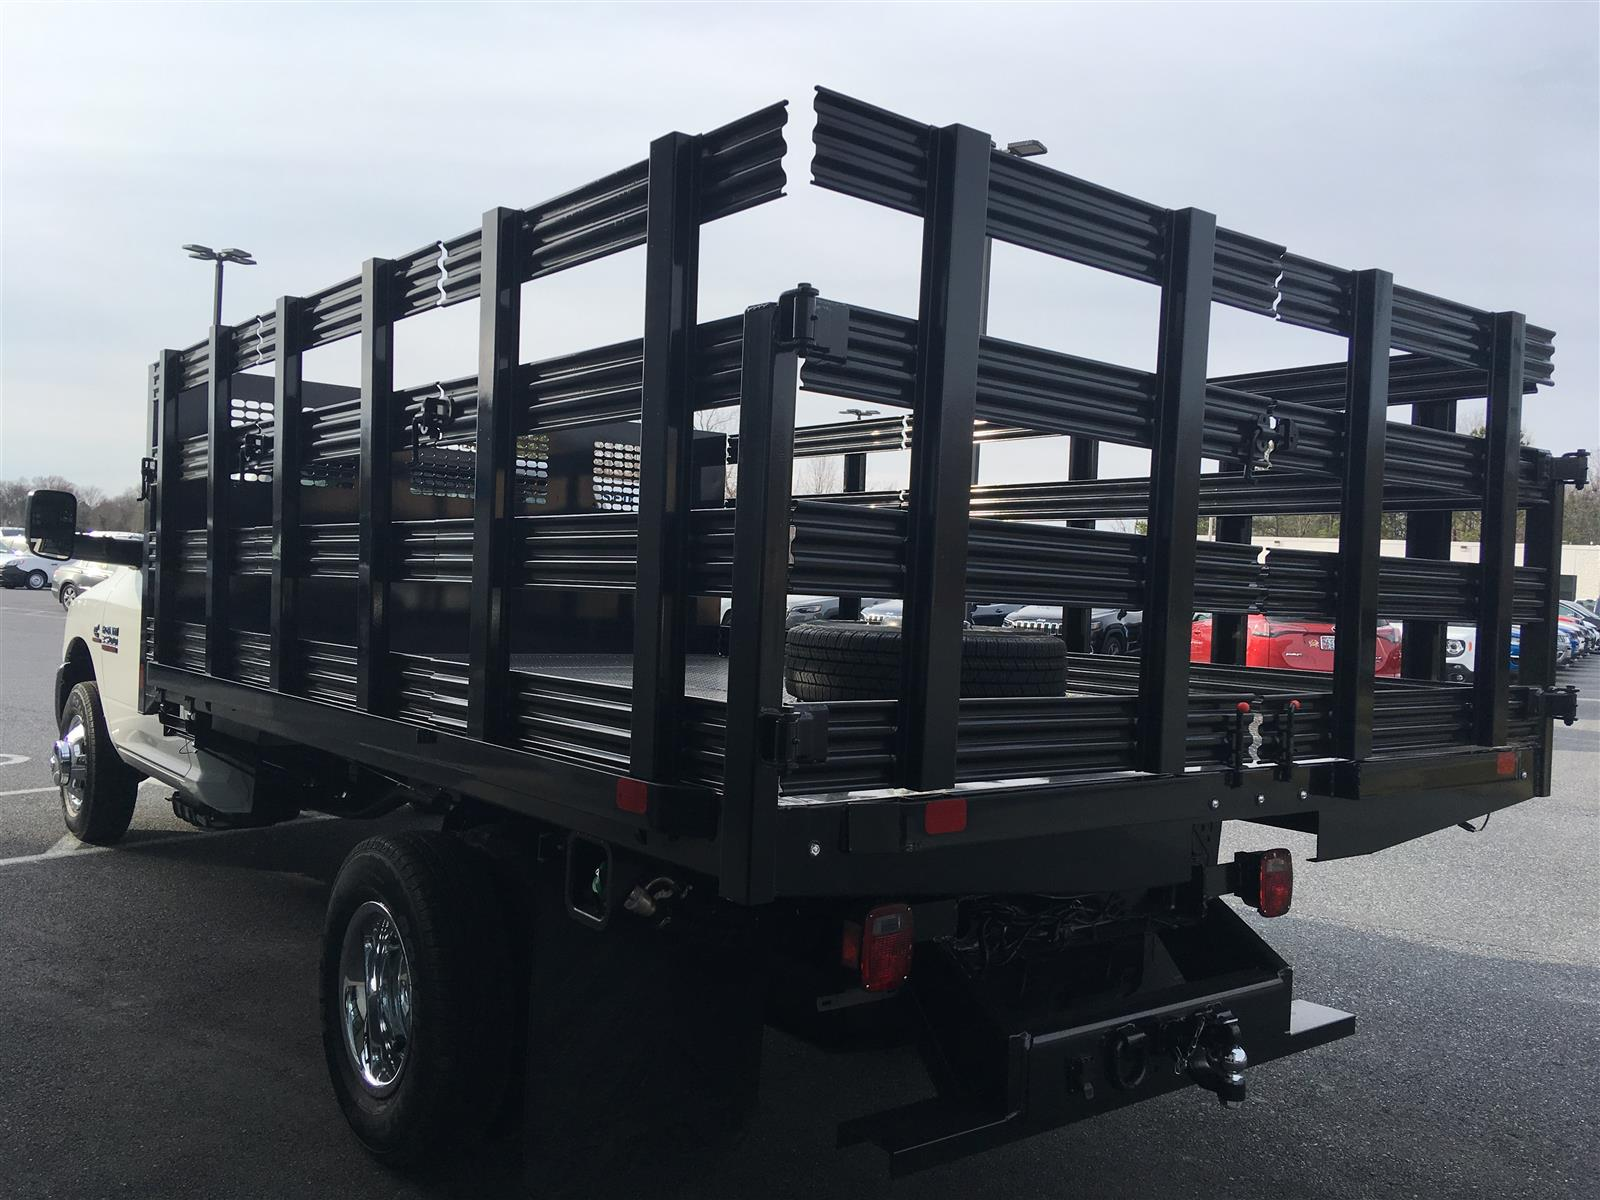 2018 Ram 3500 Regular Cab DRW 4x4, CM Truck Beds Stake Bed #18668 - photo 1